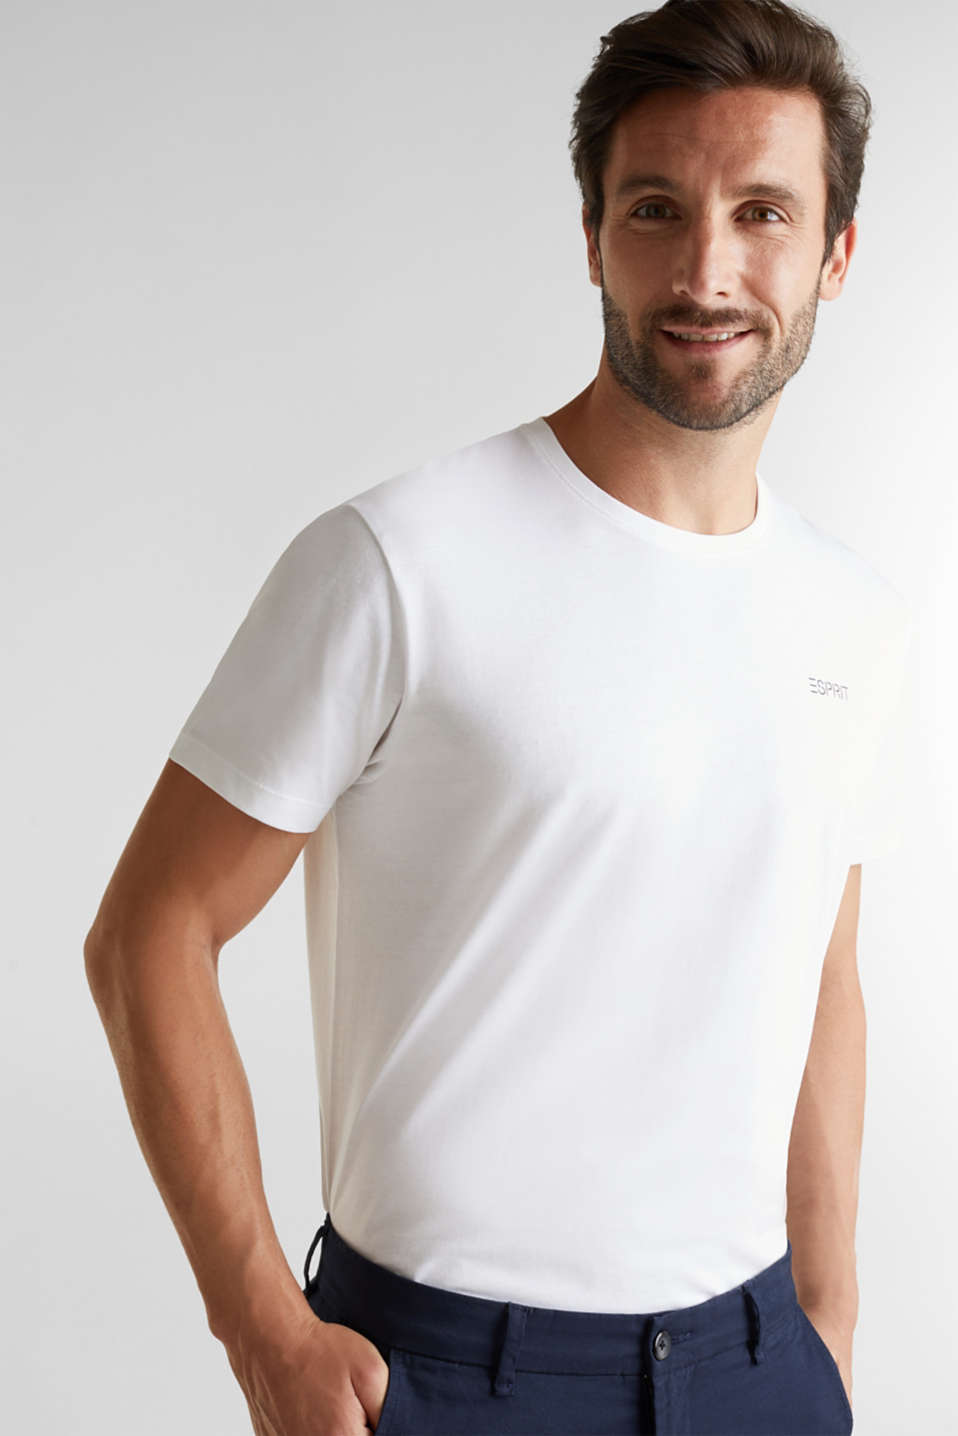 Esprit - Set van 2 jersey shirts, 100% organic cotton